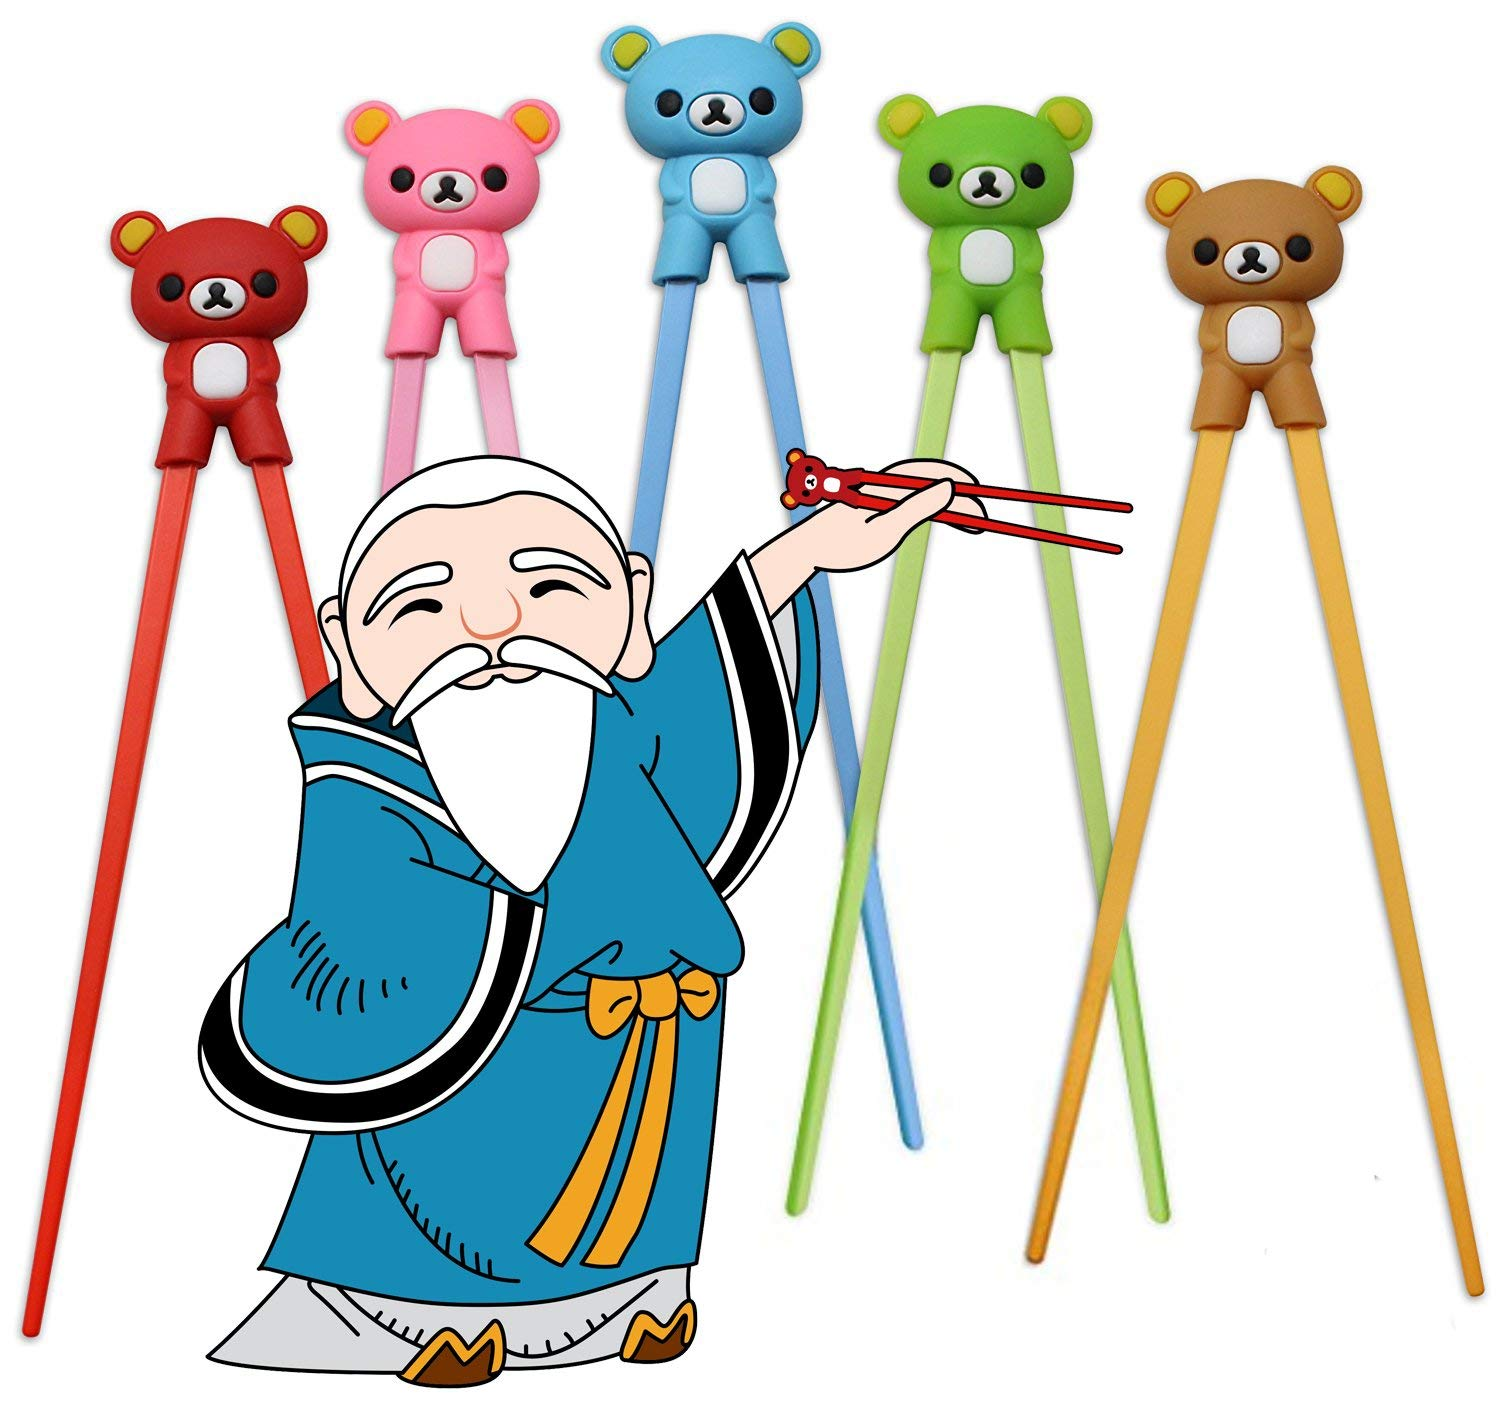 Childrens Training Chopsticks also for Adults and Beginners - Set of Assorted Colored Bear Shaped Chopsticks Comes with Attachable Learning Chopstick Ring Aids - Right or Left Handed